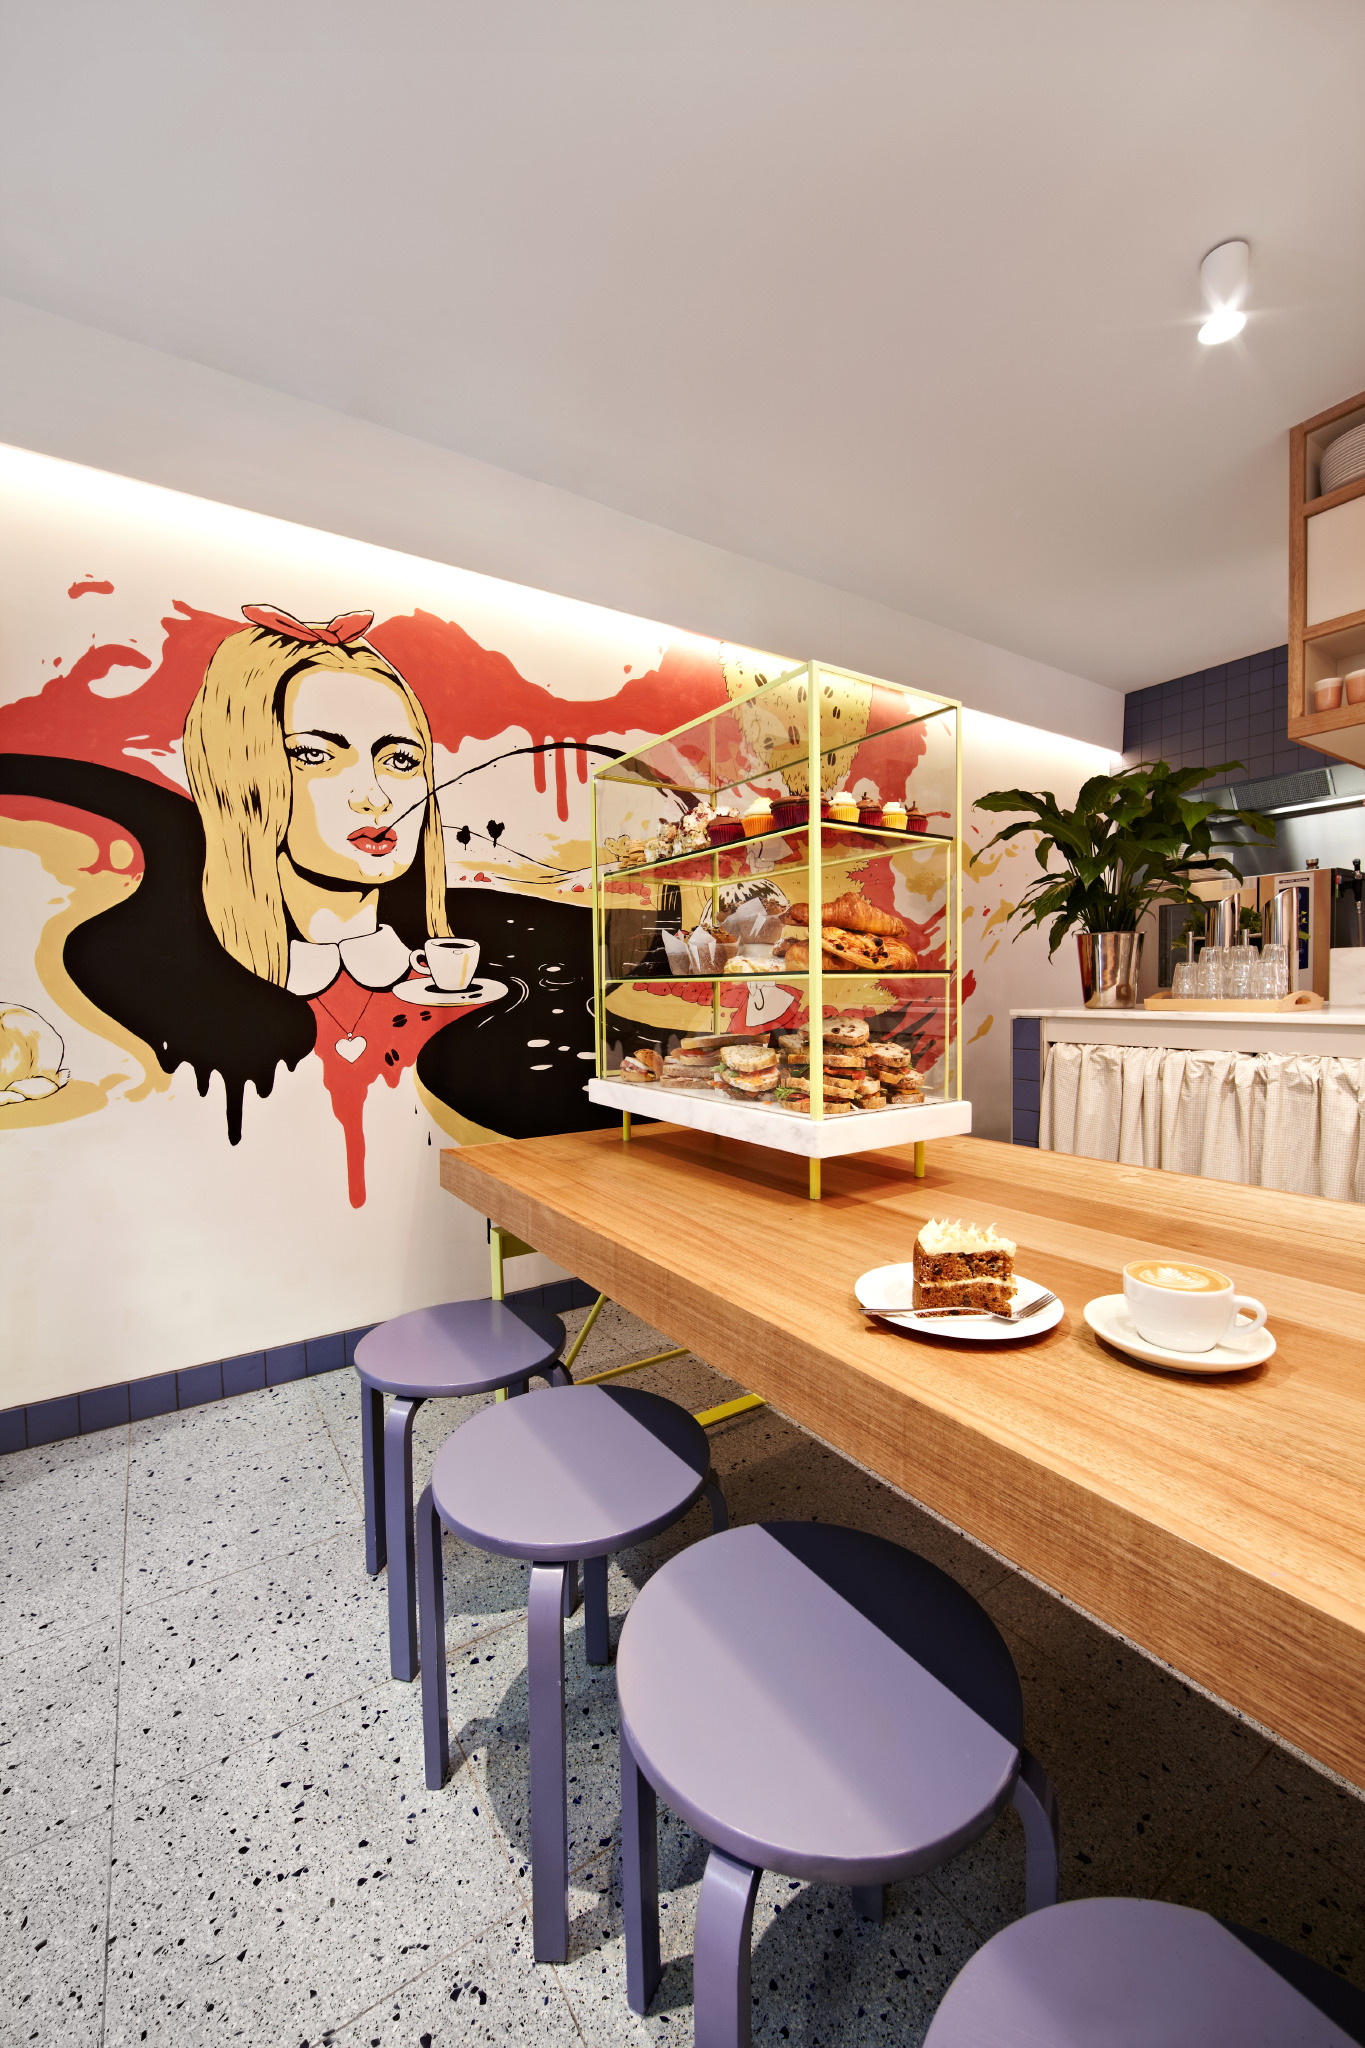 Alice Nivens - Interior Commercial Fit-out - Melbourne, VIC, Australia - Image 4